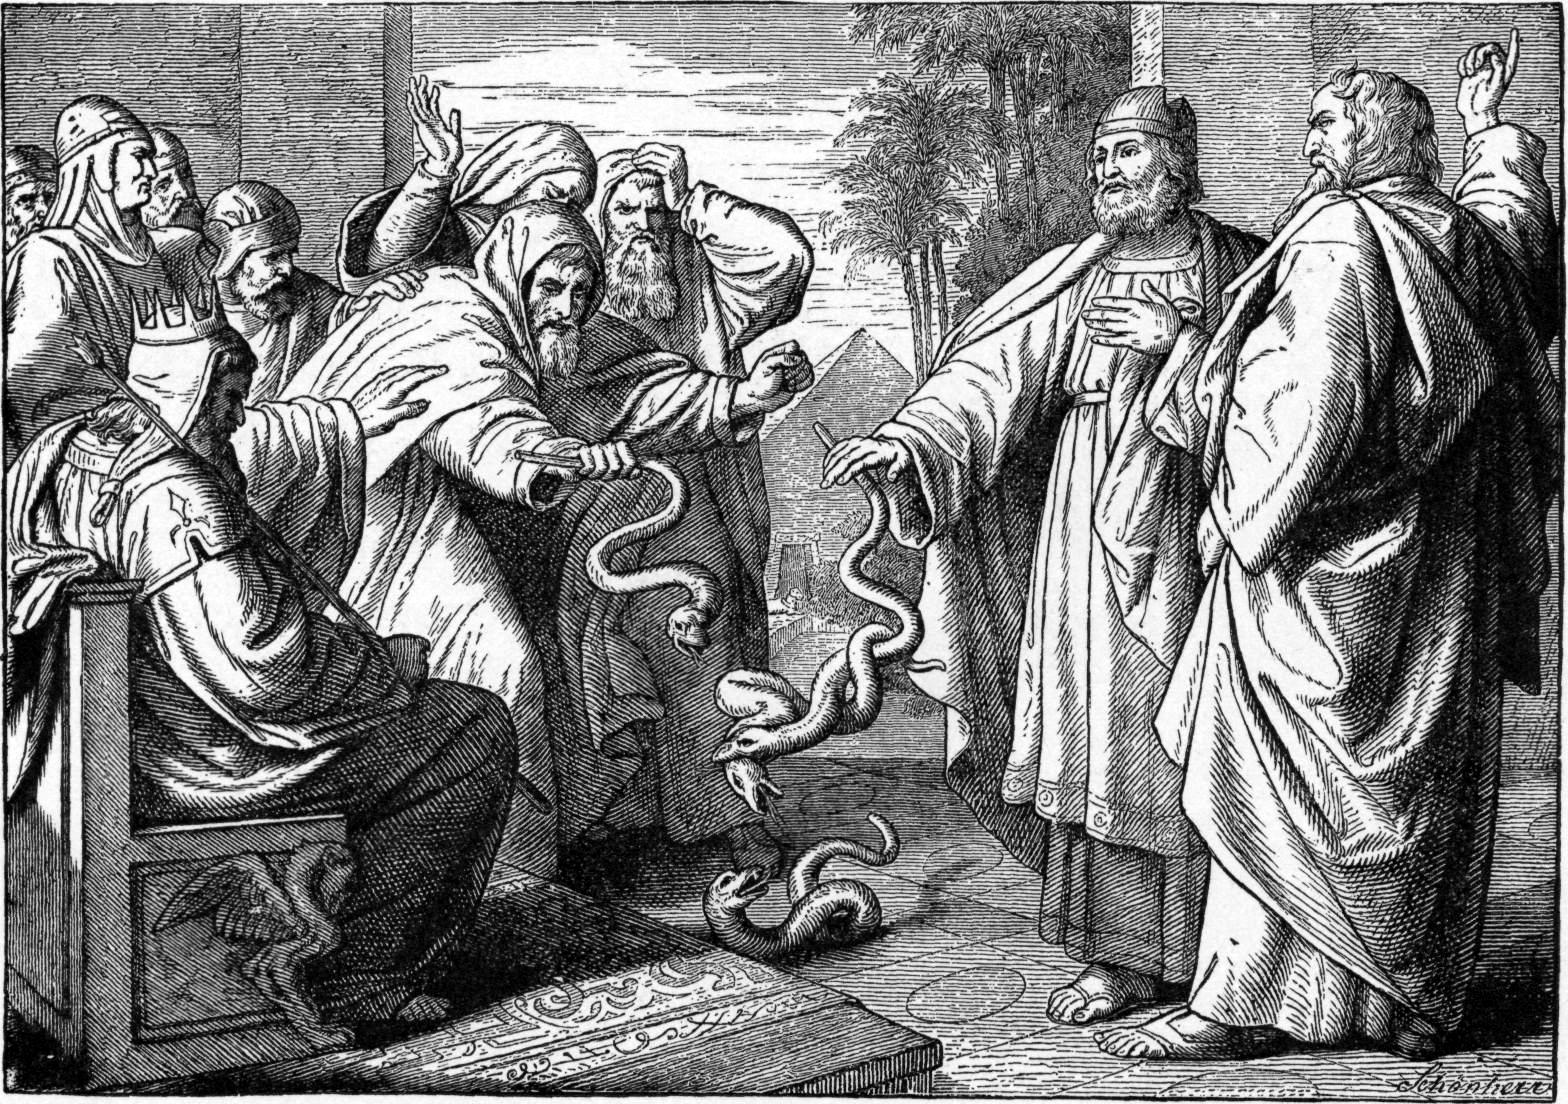 Charles Foster, Bible Pictures with Brief Descriptions (Philadelphia 1897). The Egyptians on the left miraculously producing snakes are sorcerers. Moses and Aaron, miraculously producing snakes on the right, are instruments of a divine miracle. See the difference?